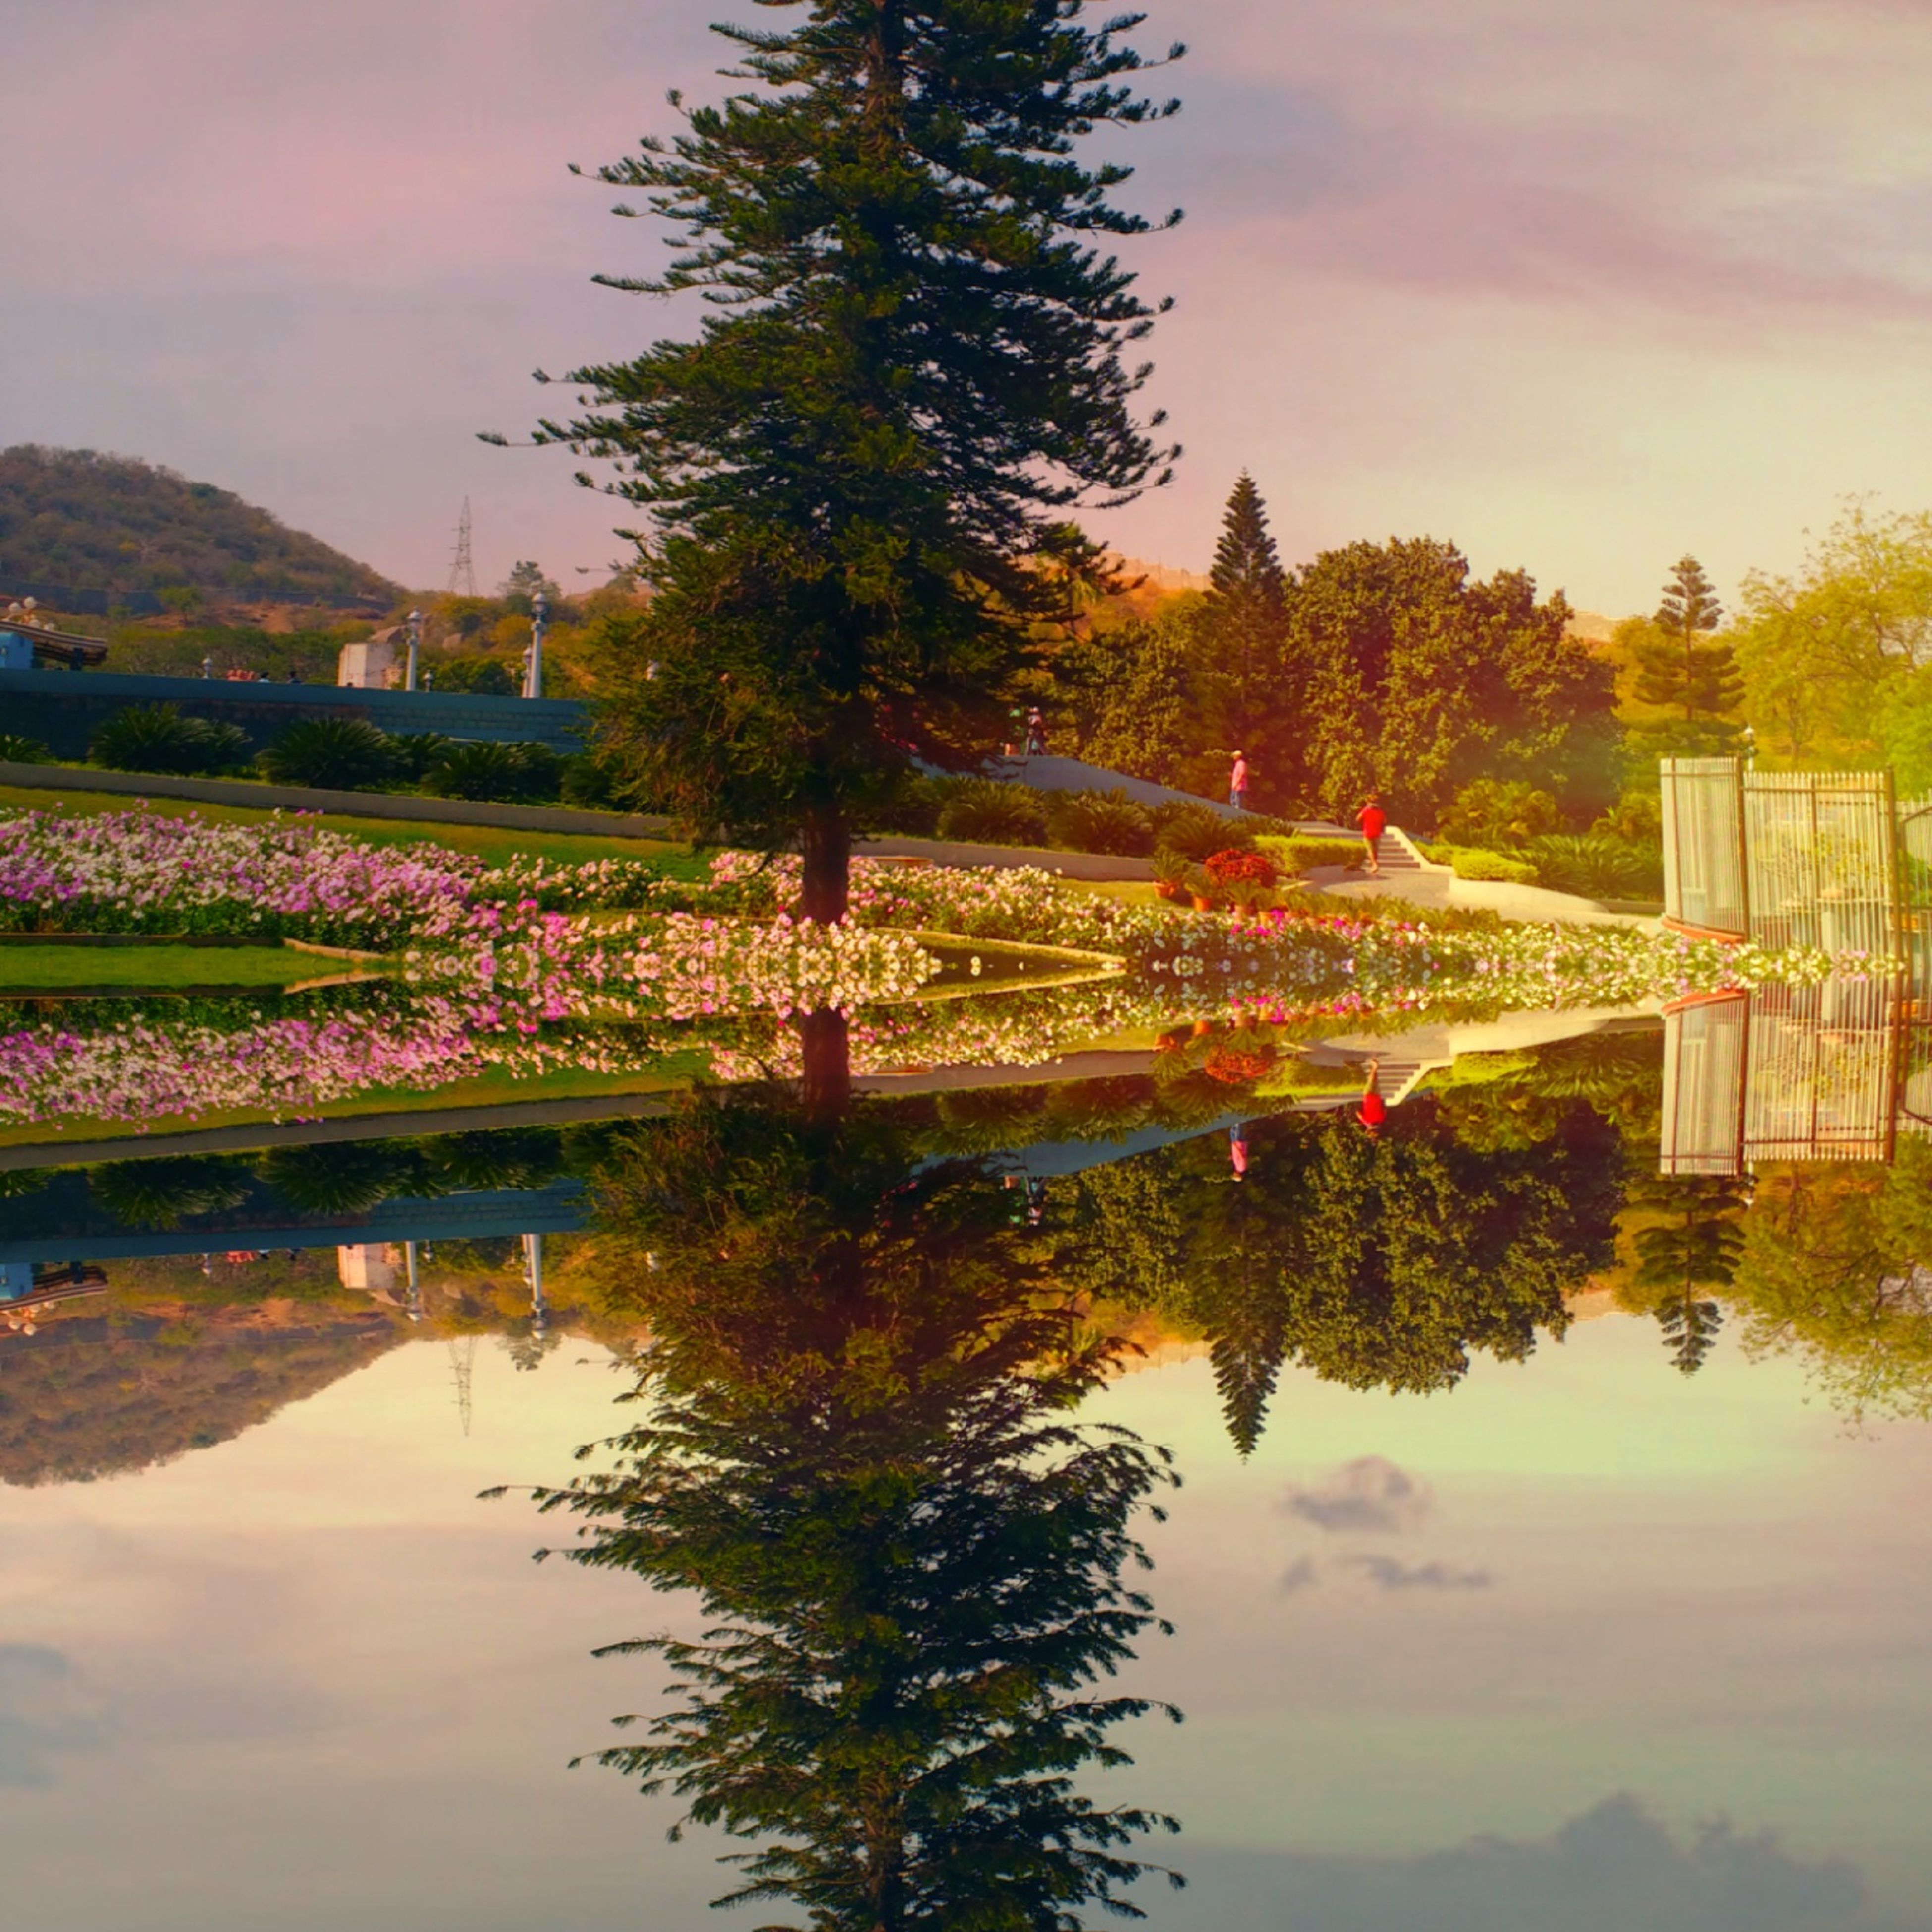 reflection, water, waterfront, sky, tree, nature, lake, sunset, no people, beauty in nature, scenics, flower, multi colored, illuminated, celebration, outdoors, christmas tree, architecture, day